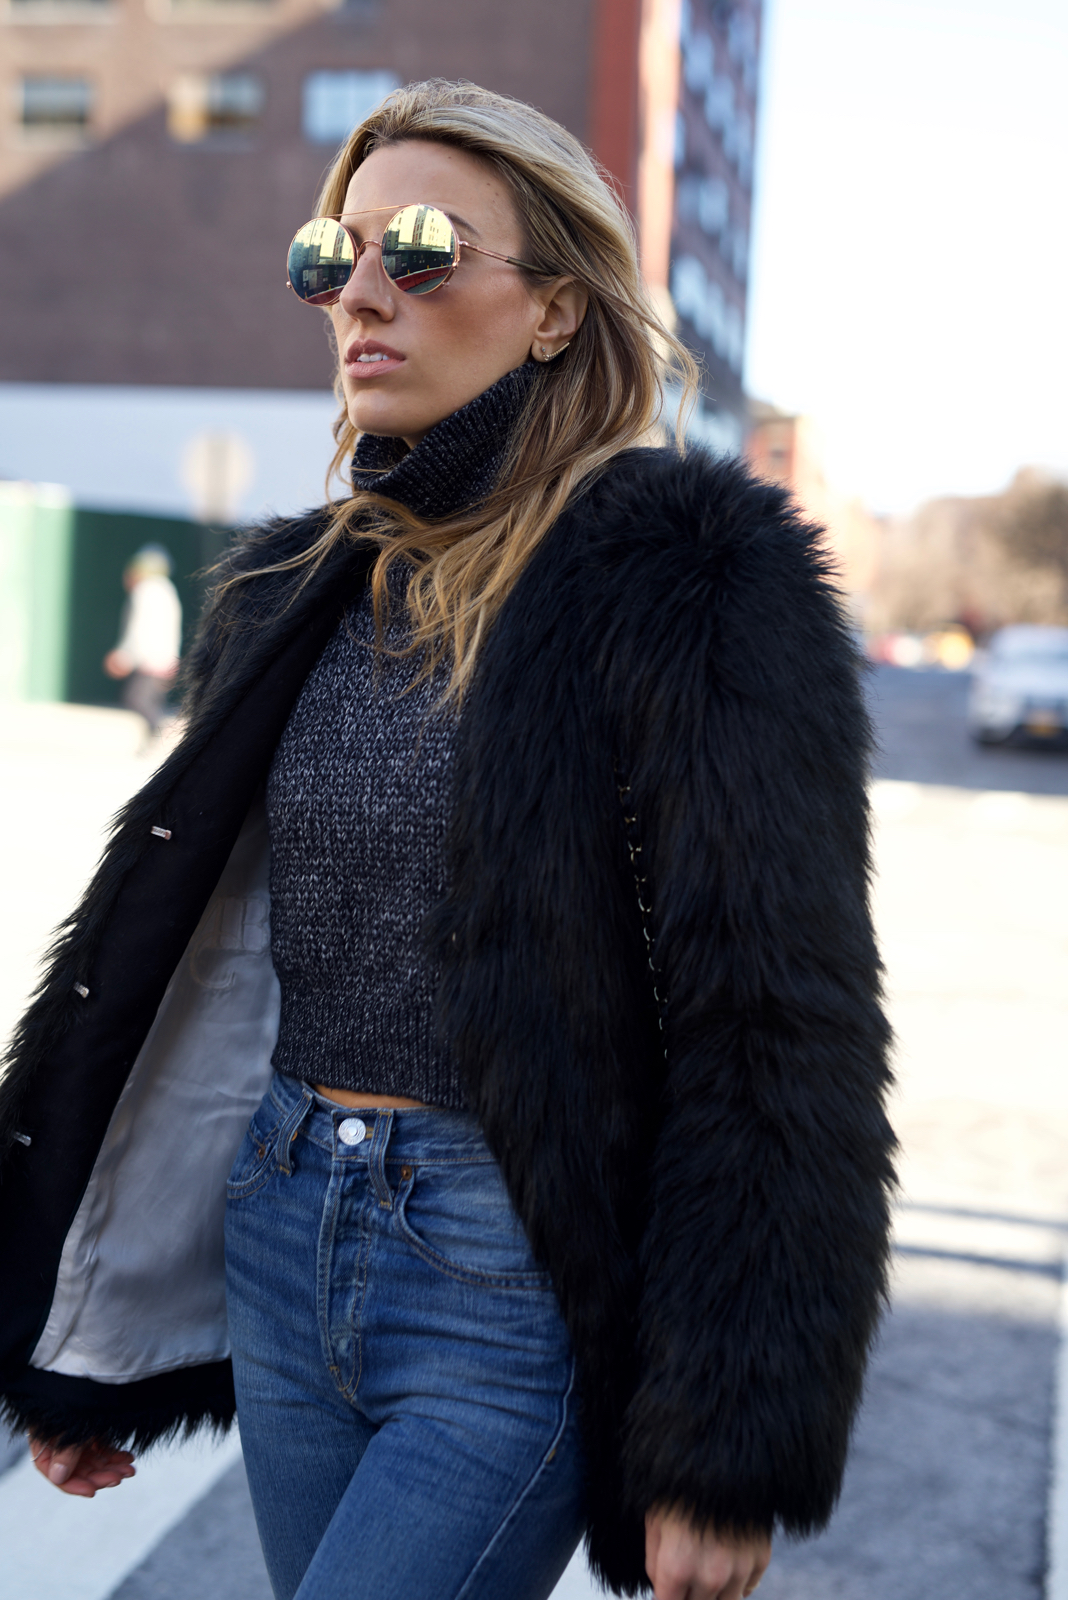 High waisted jeans, Re/Done Originals, Faux Fur Coat, Altuzarra, Sunday Somewhere, Chanel, Cropped Sweater